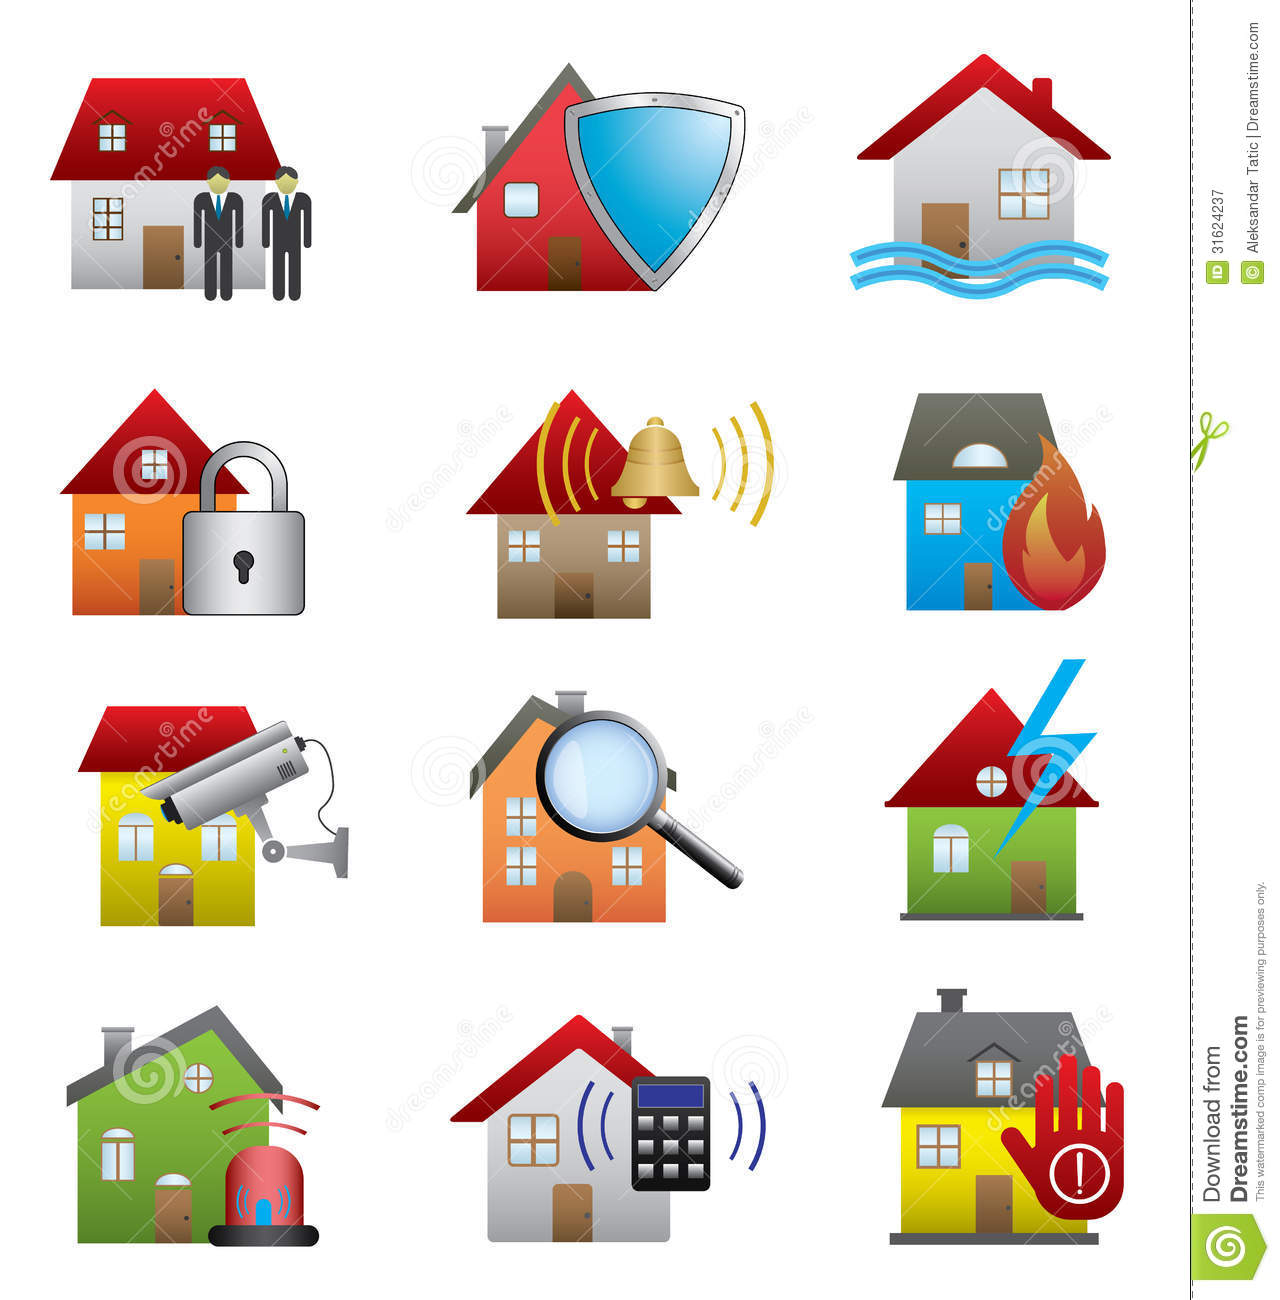 Venta De Sistemas De Seguridad Para El Hogar Home Security Icons Royalty Free Stock Photography Image